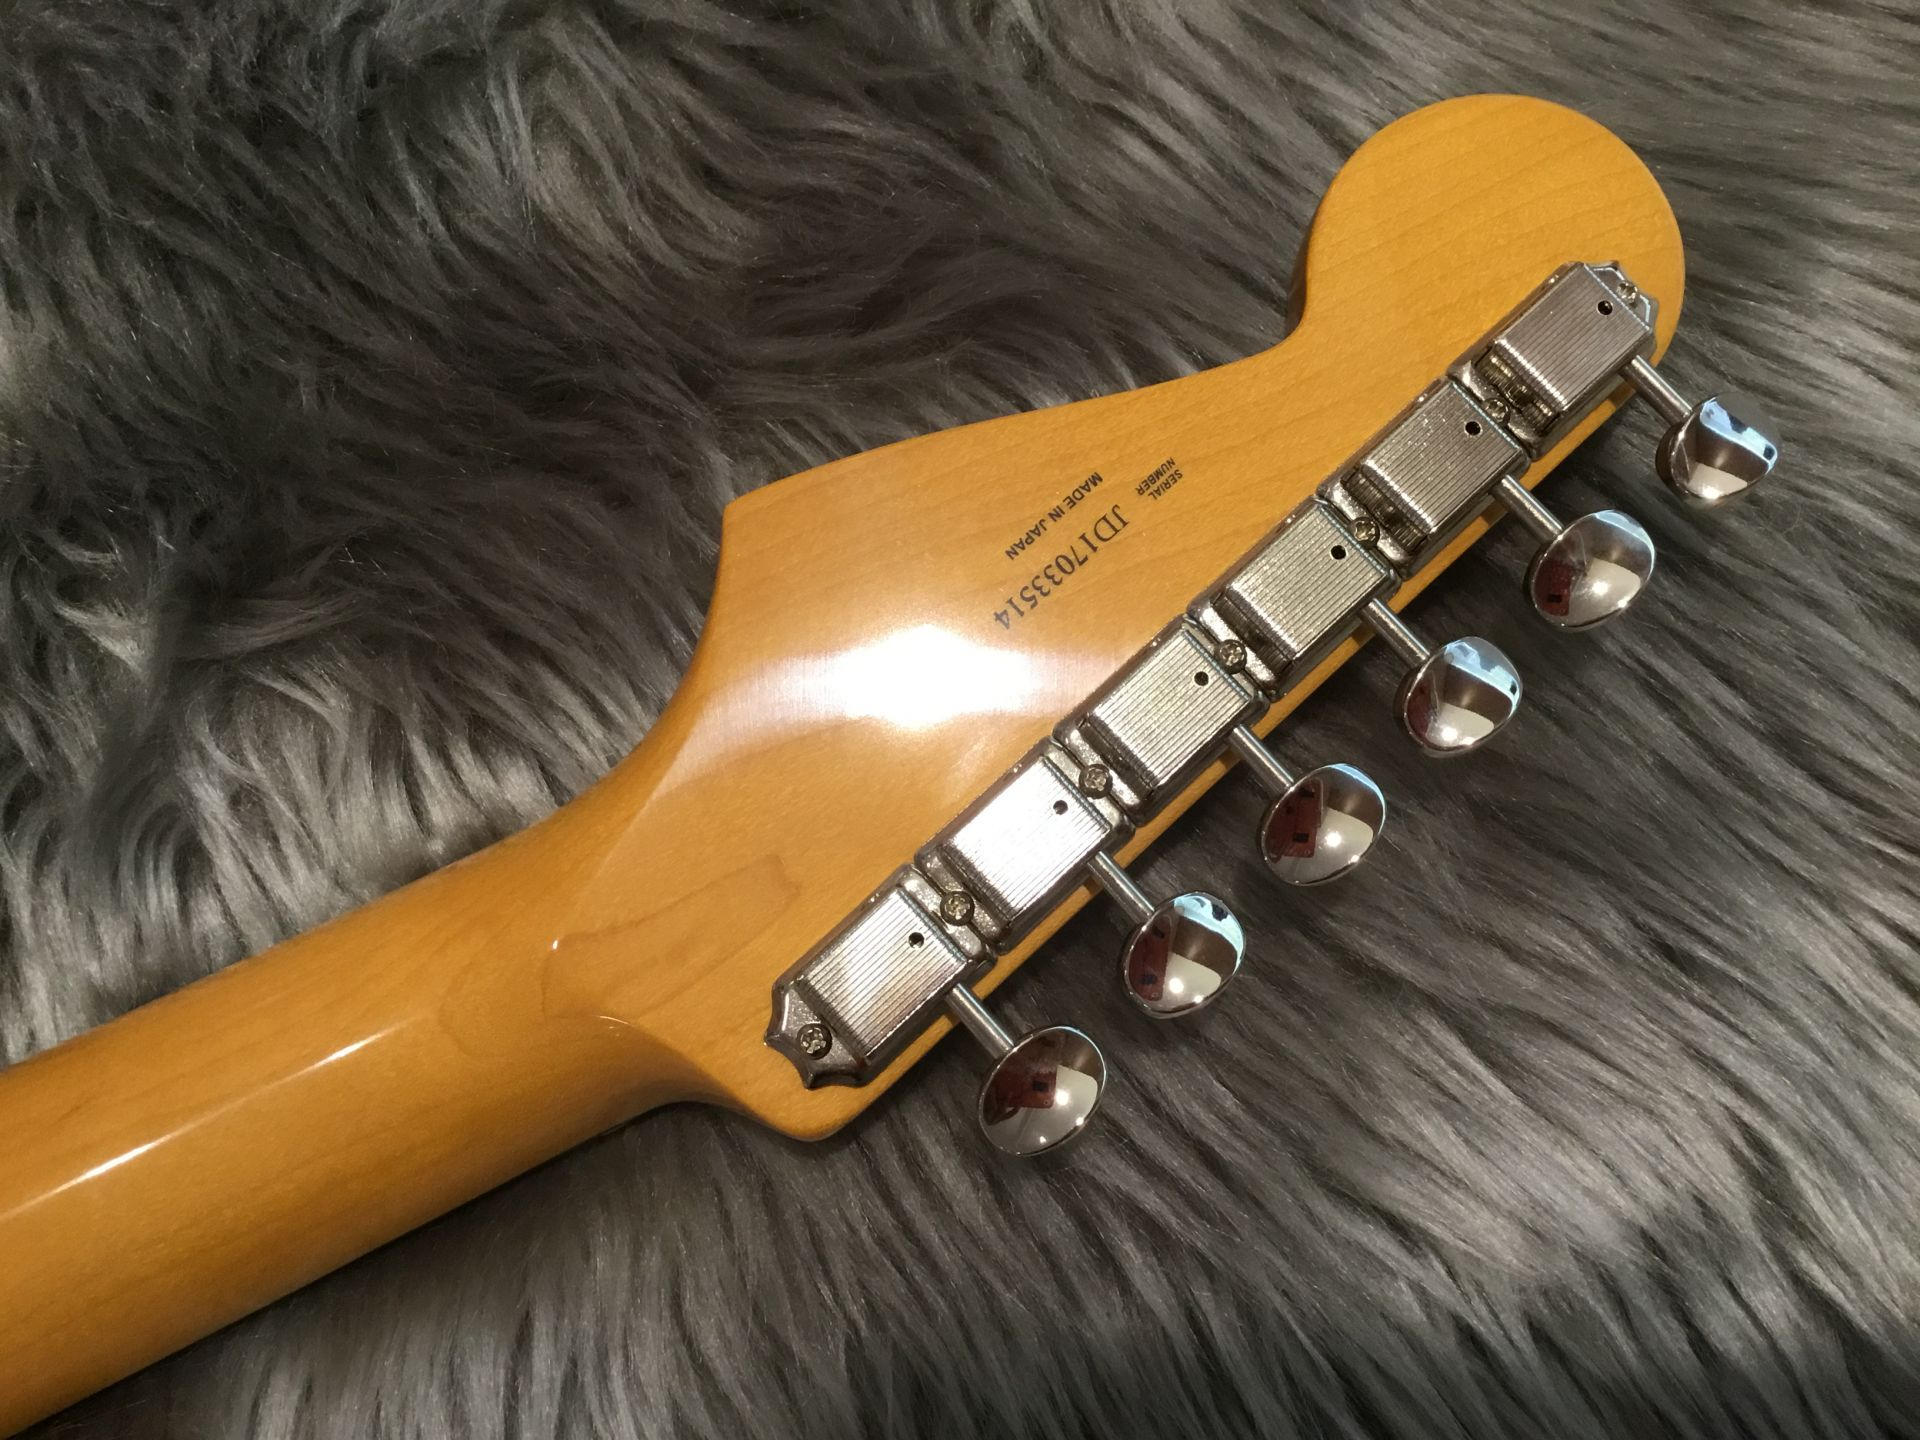 MADE IN JAPAN TRADITIONAL 60S STRATOCASTER®のヘッド裏-アップ画像